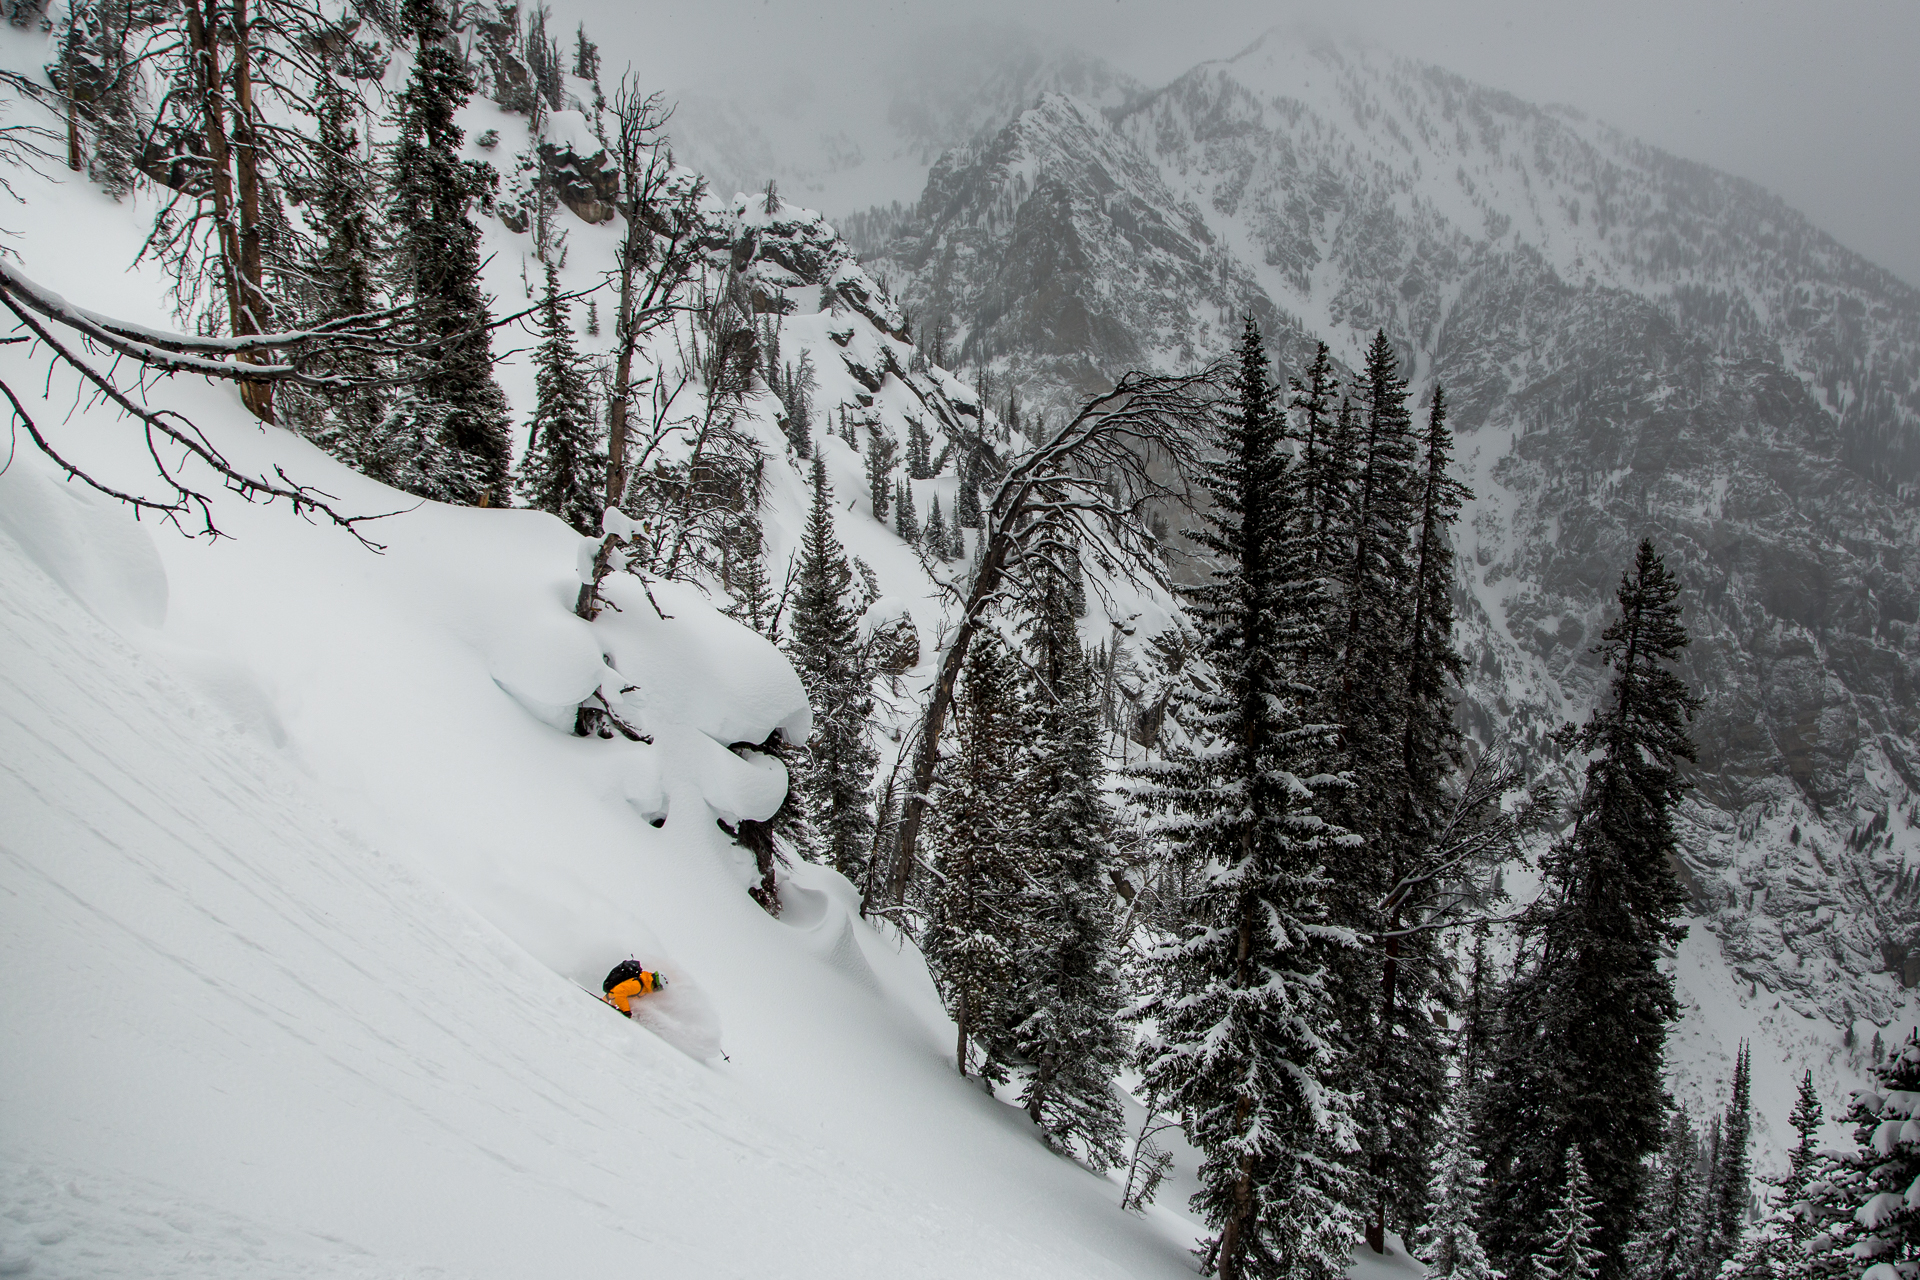 For all the attention given to technical routes, the classic powder run will always rule the day in the Tetons. Dan Corn Rides the wave in the southern part of the range. PHOTO: Mark Fisher